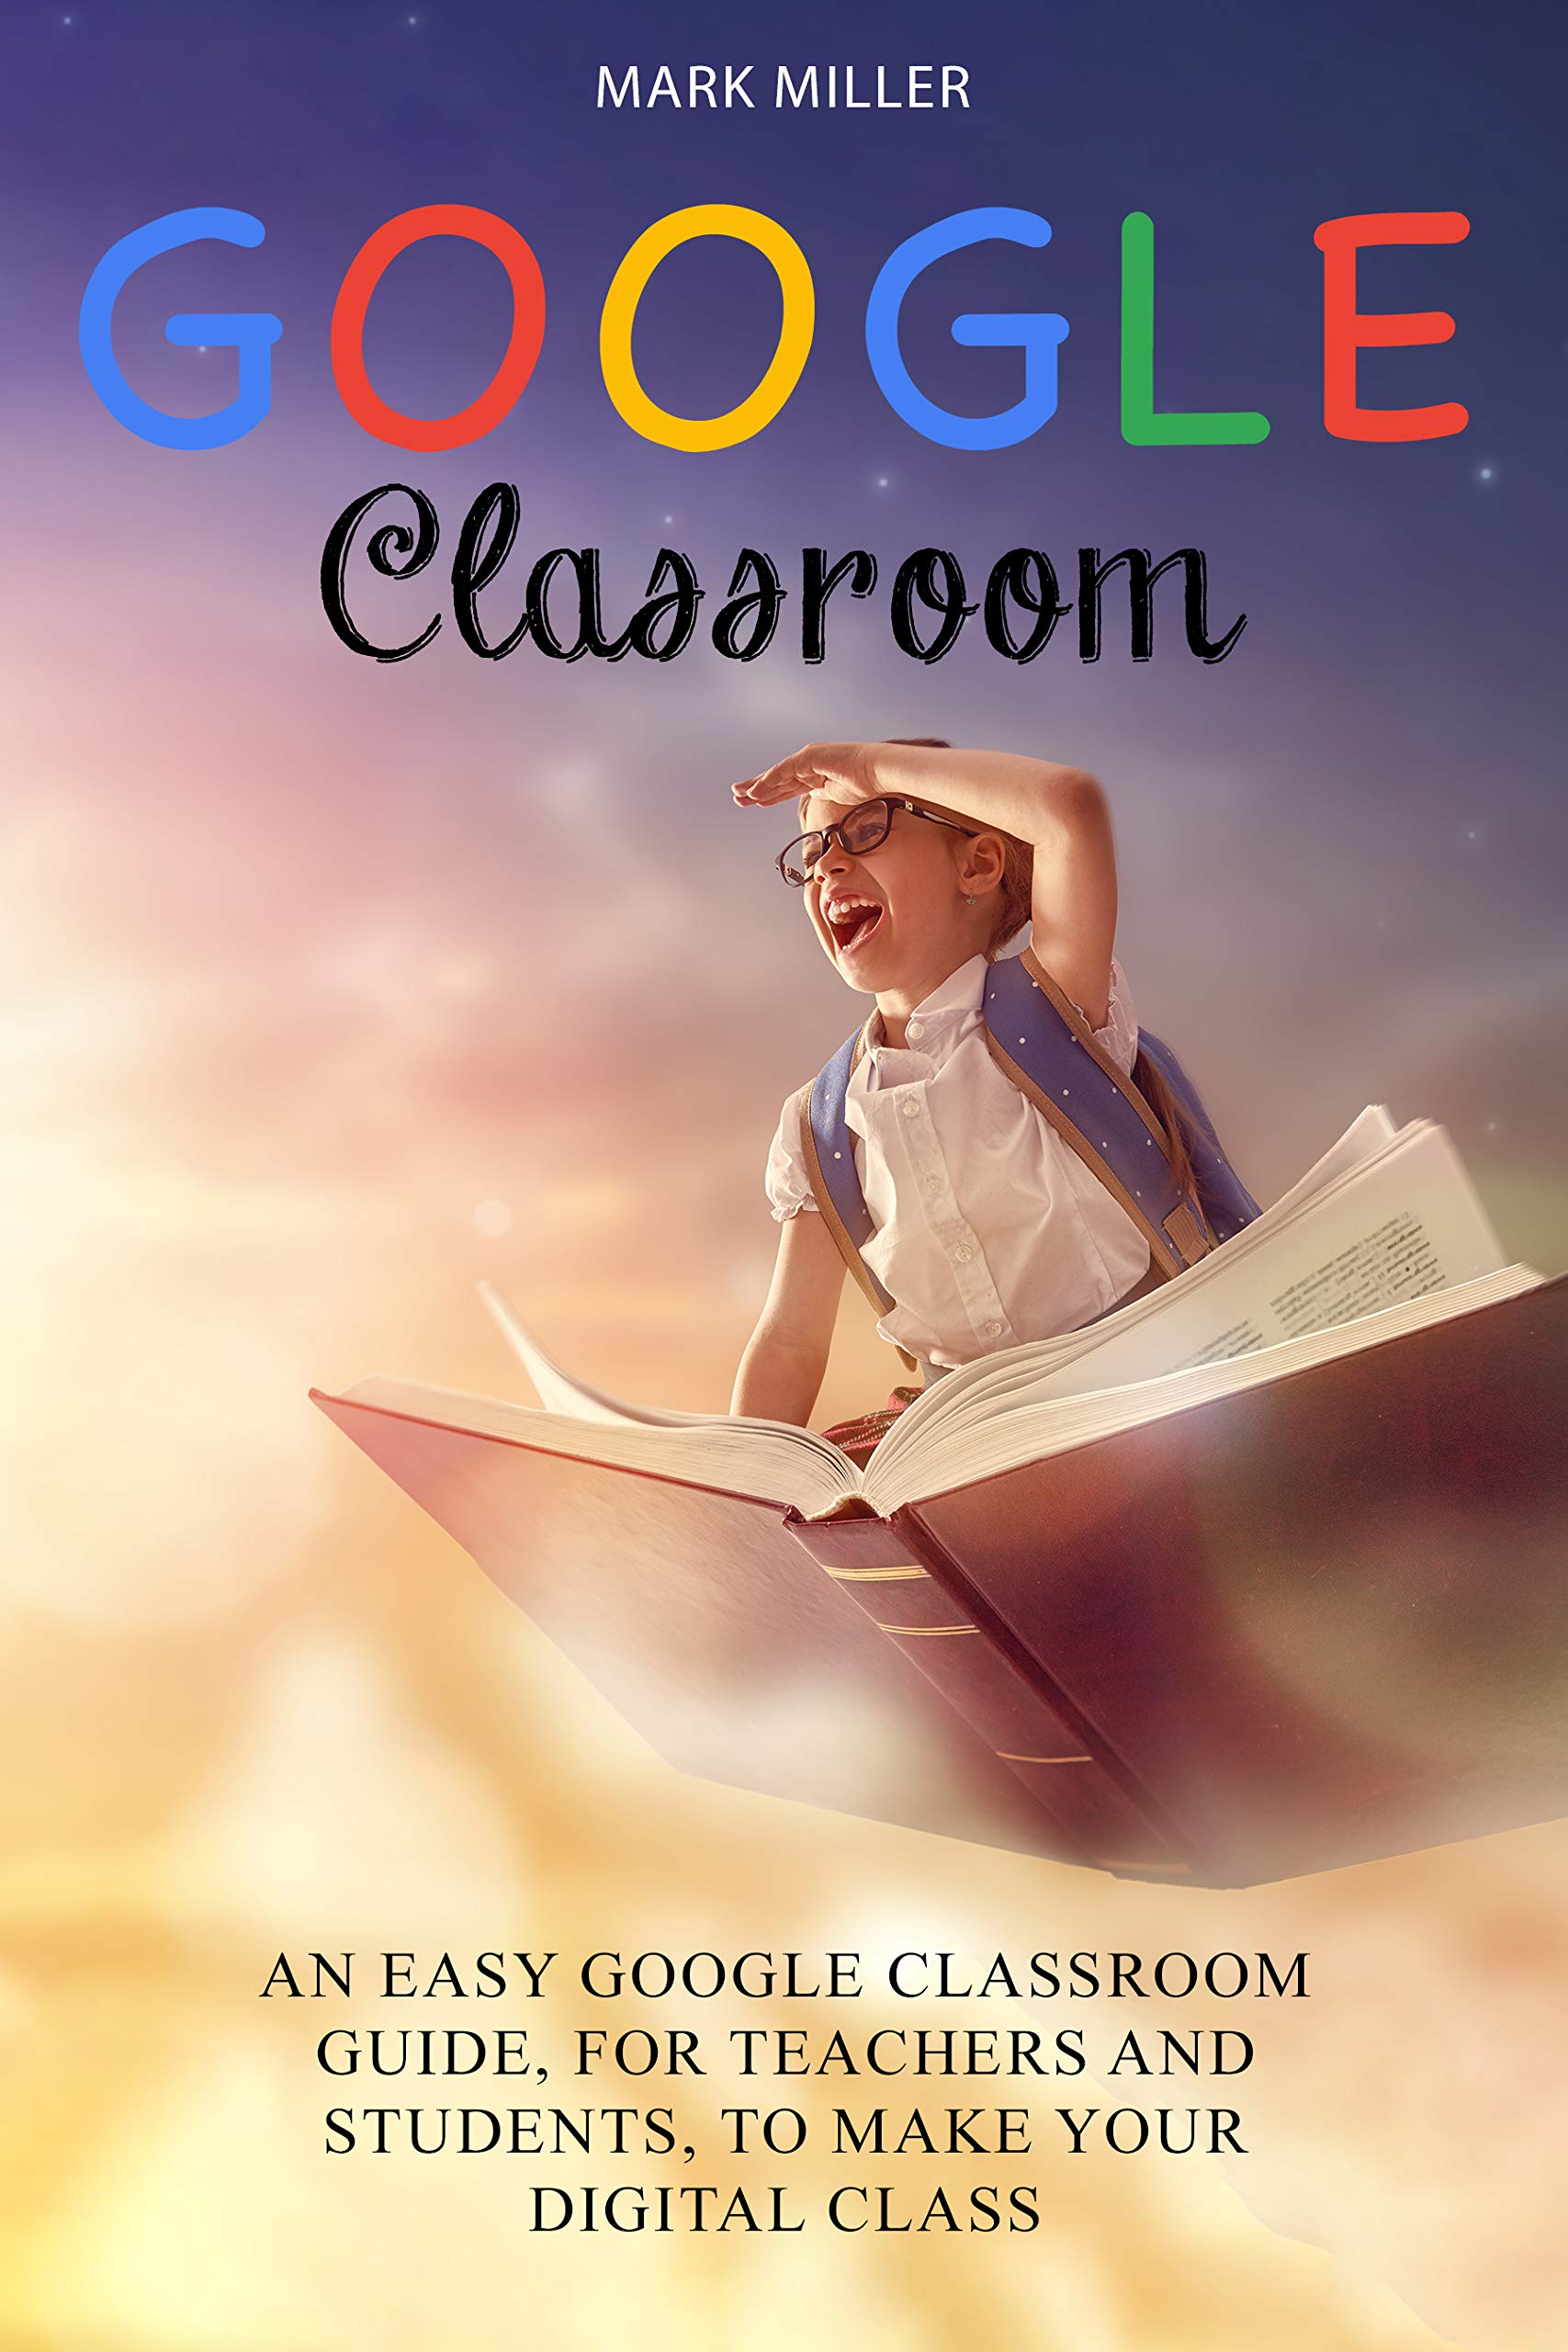 Google Classroom: An Easy Google Classroom Guide, For Teachers and Students, to Make Your Digital Class